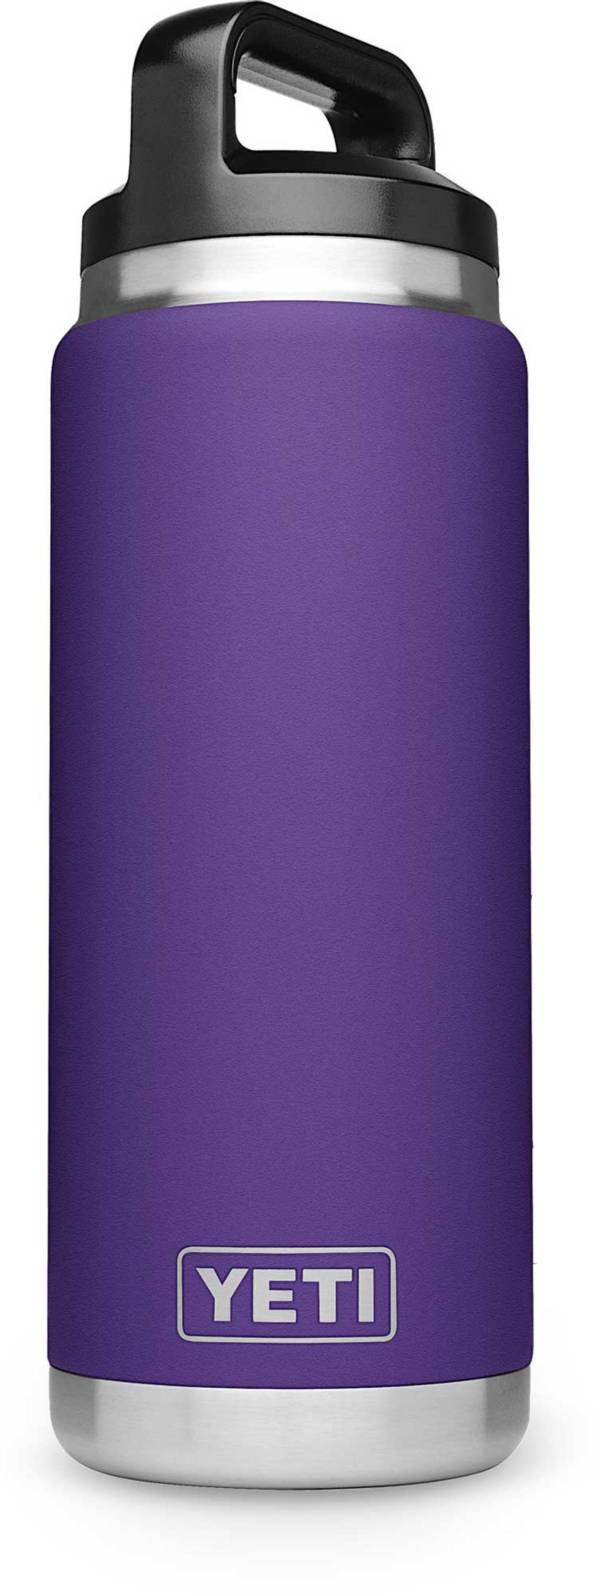 YETI 26 oz. Rambler Bottle product image